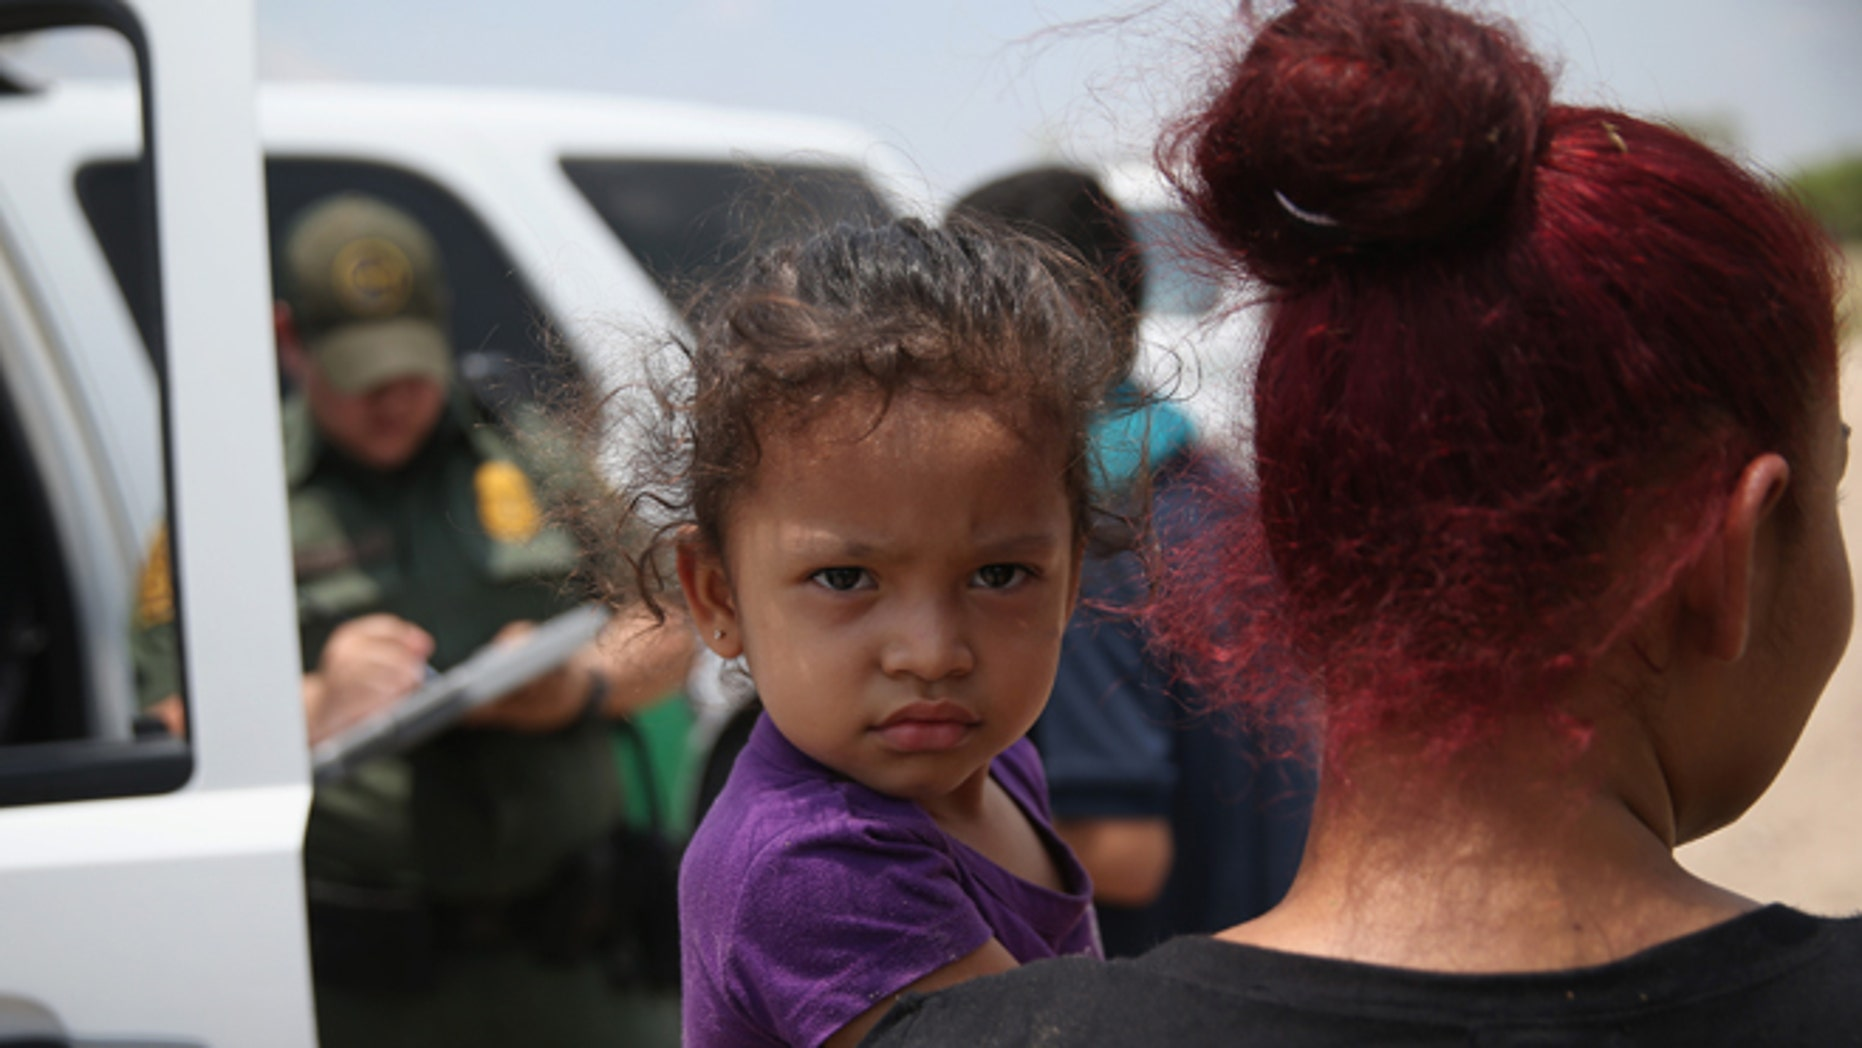 A mother and child, 3, from El Salvador await transport to a processing center for undocumented immigrants after they crossed the Rio Grande into the United States on July 24, 2014 in Mission, Texas. (Photo by John Moore/Getty Images)